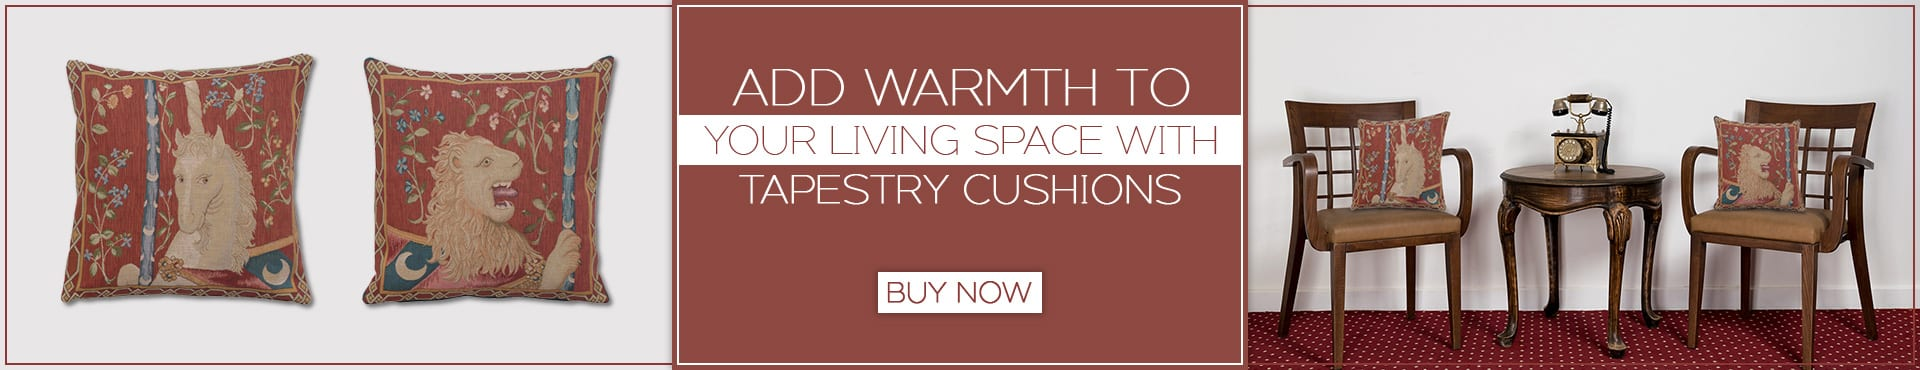 Add Warmth to Your Living Space with tapestry Cushions